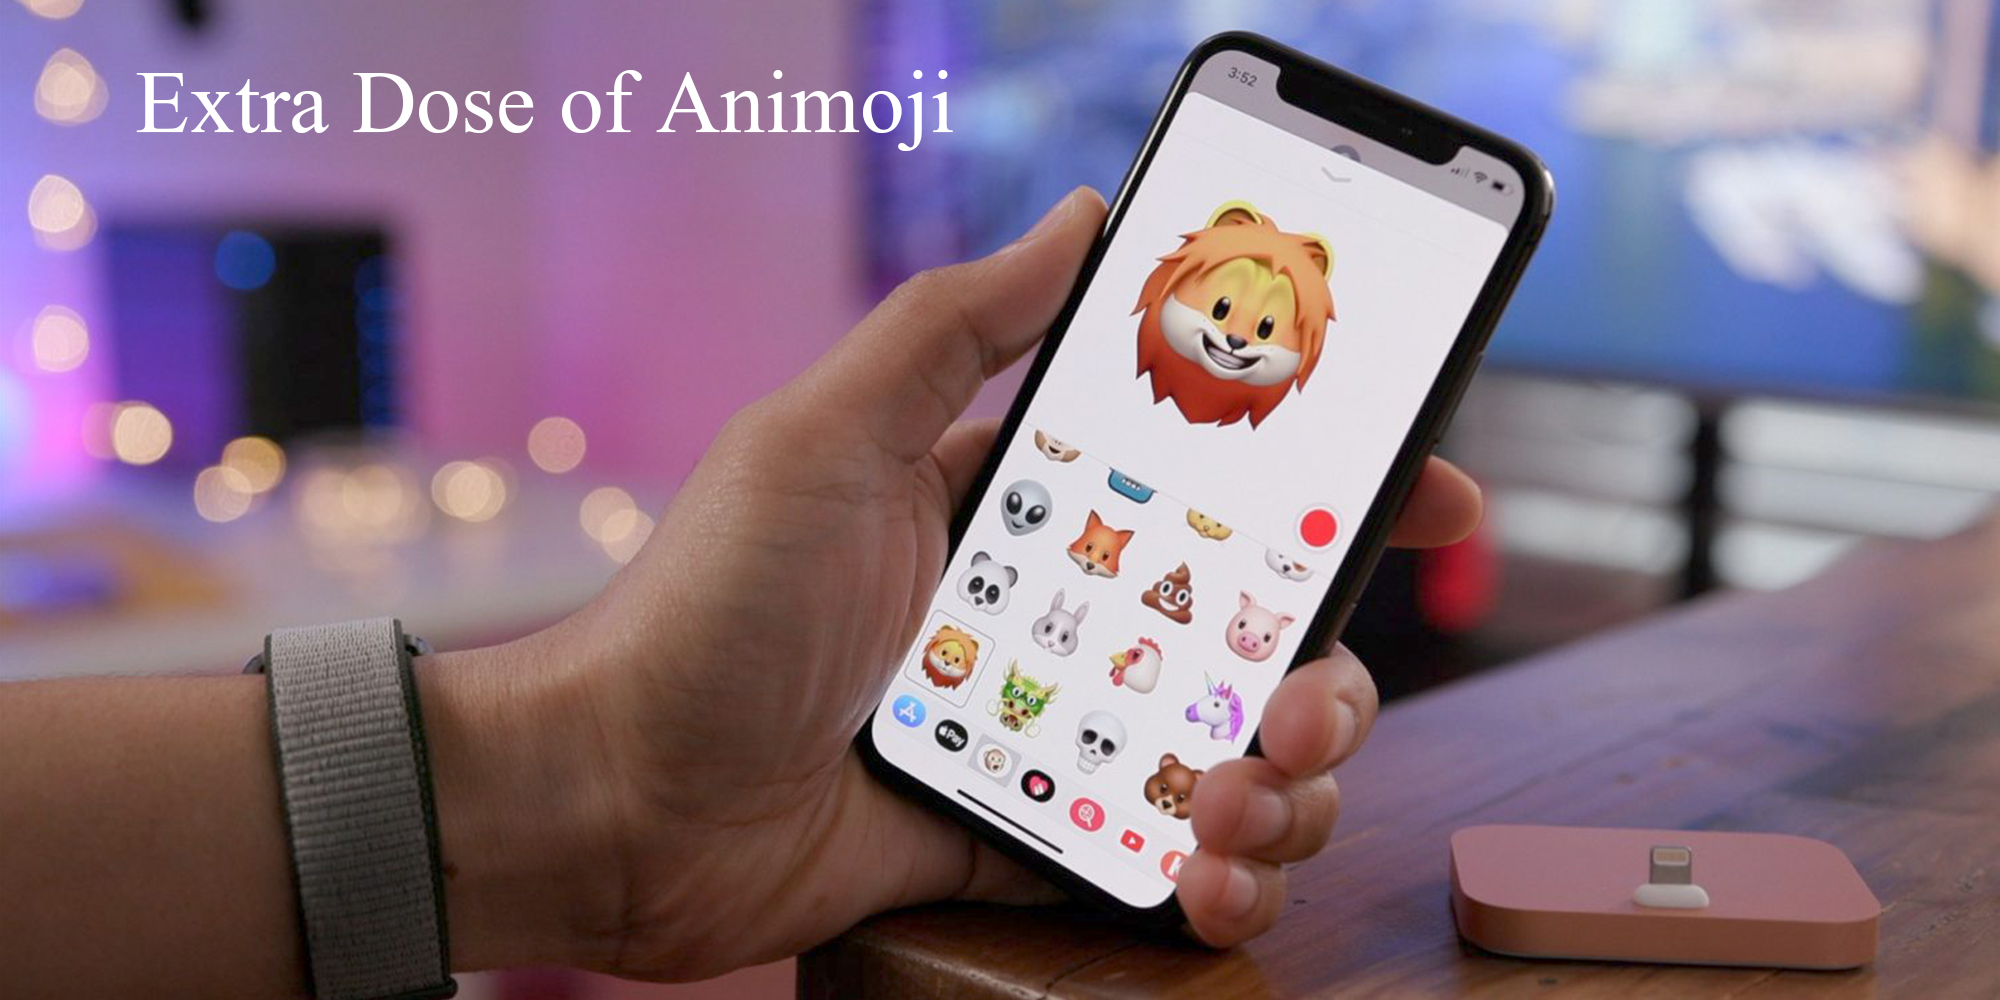 Extra Dose of Animoji